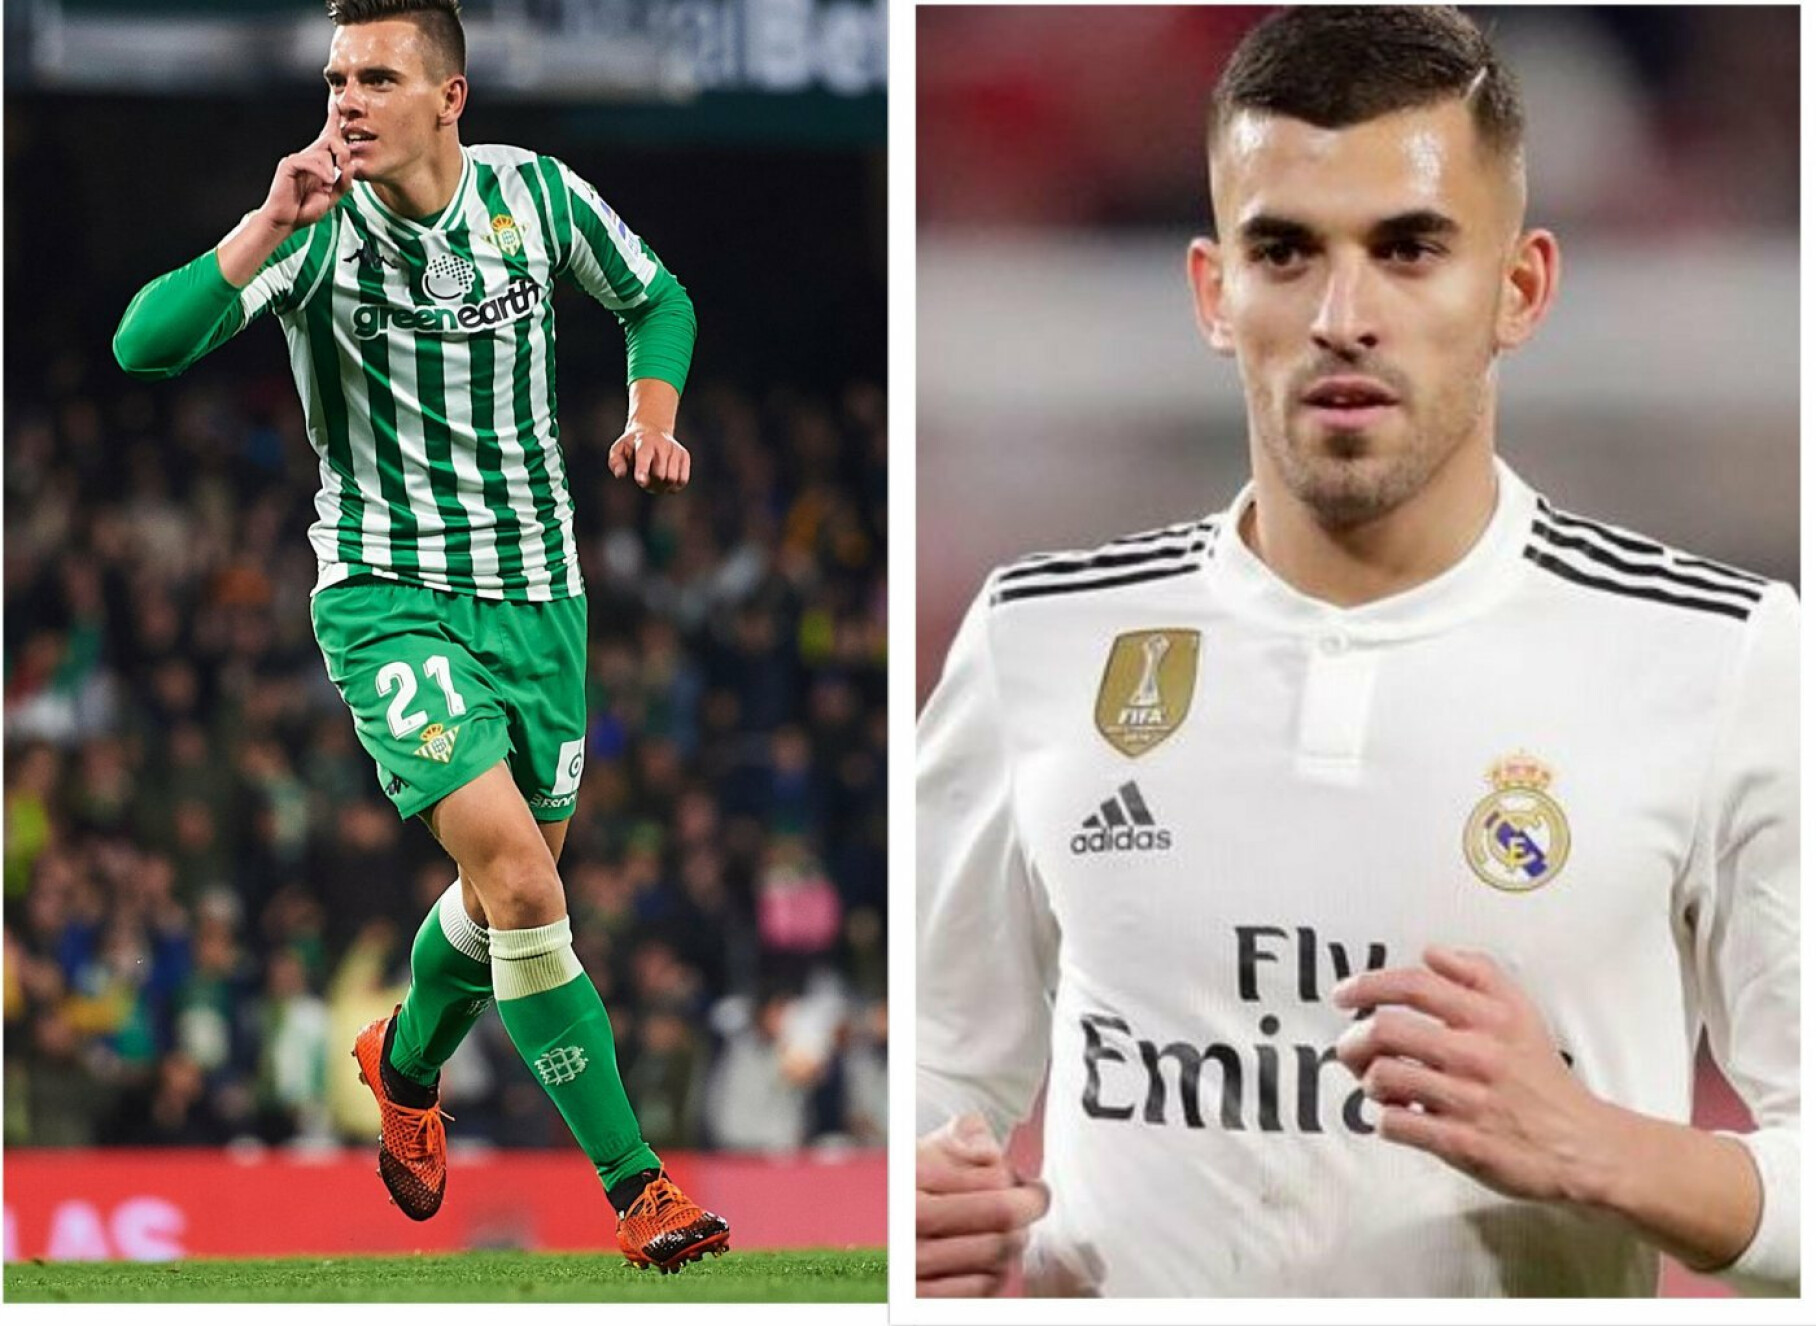 Dani Ceballos vs Giovani Lo Celso: Meet the new midfielders set to rule North London